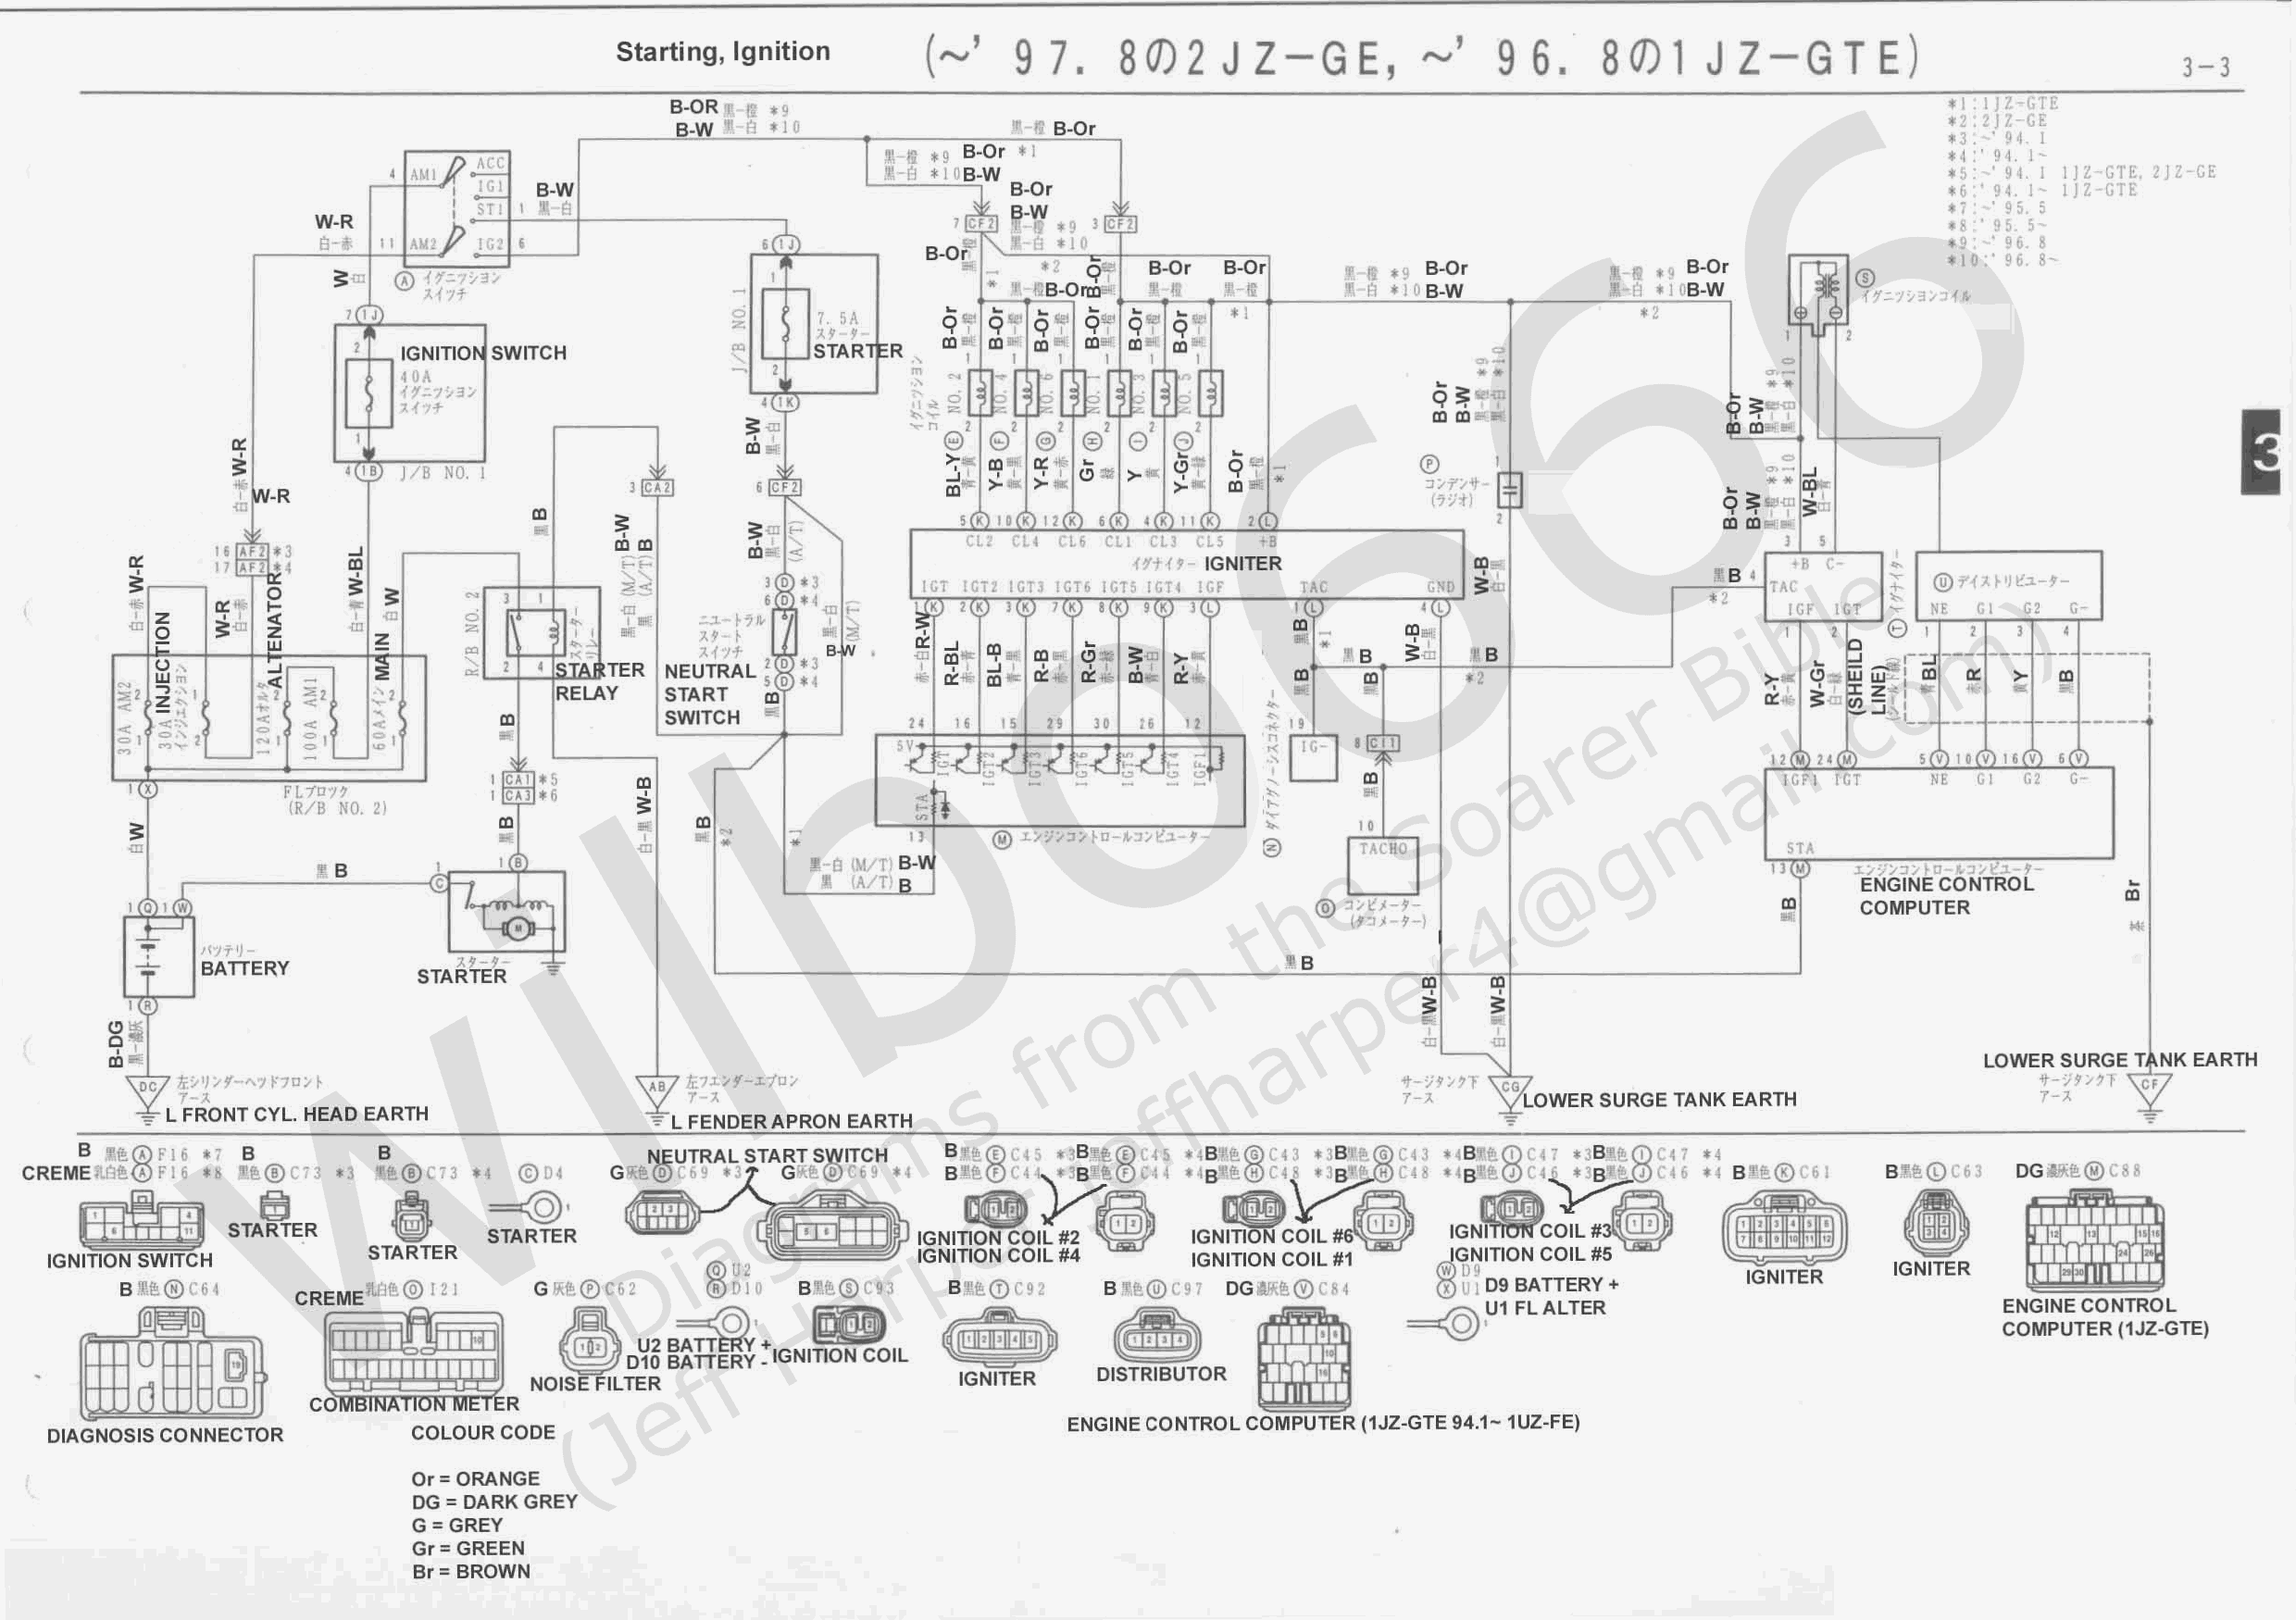 xZZ3x Electrical Wiring Diagram 6737105 3 3 wilbo666 [licensed for non commercial use only] mirror 1jz gte 1jz wiring diagram at soozxer.org